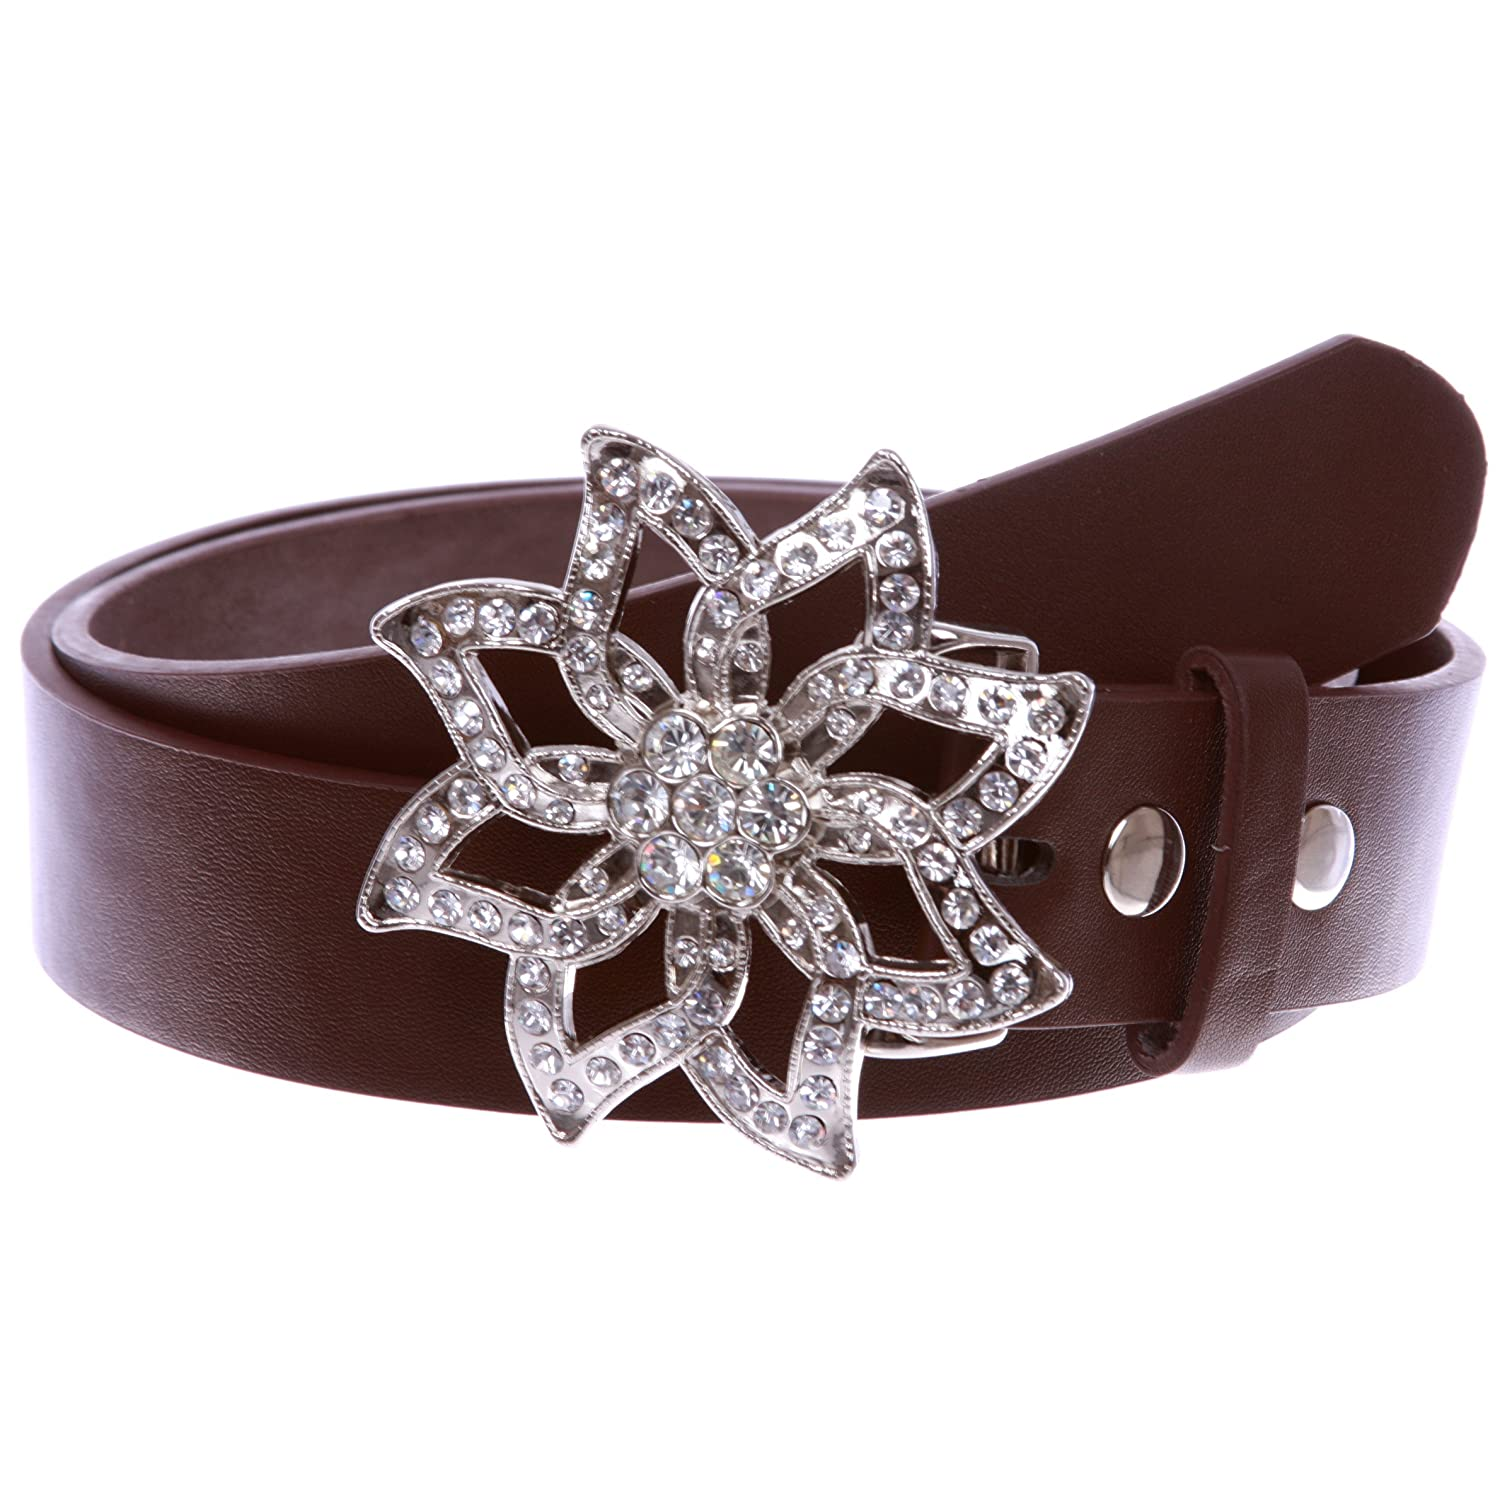 Womens Snap On Rhinestone Floral Fashion Belt Multi-Color Options